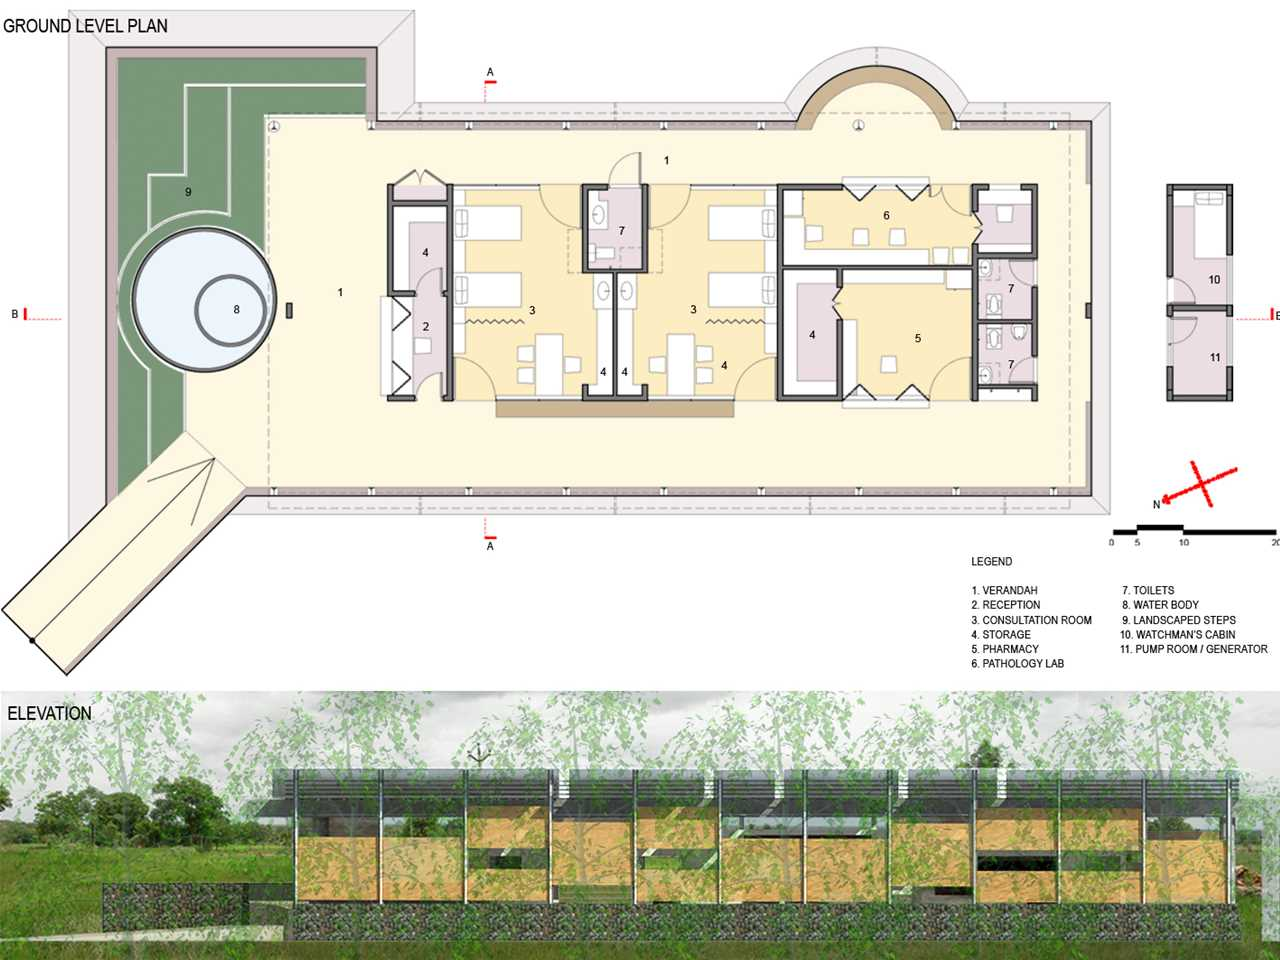 Project entry 2011 Asia Pacific – Primary healthcare center, Dharmapuri, India